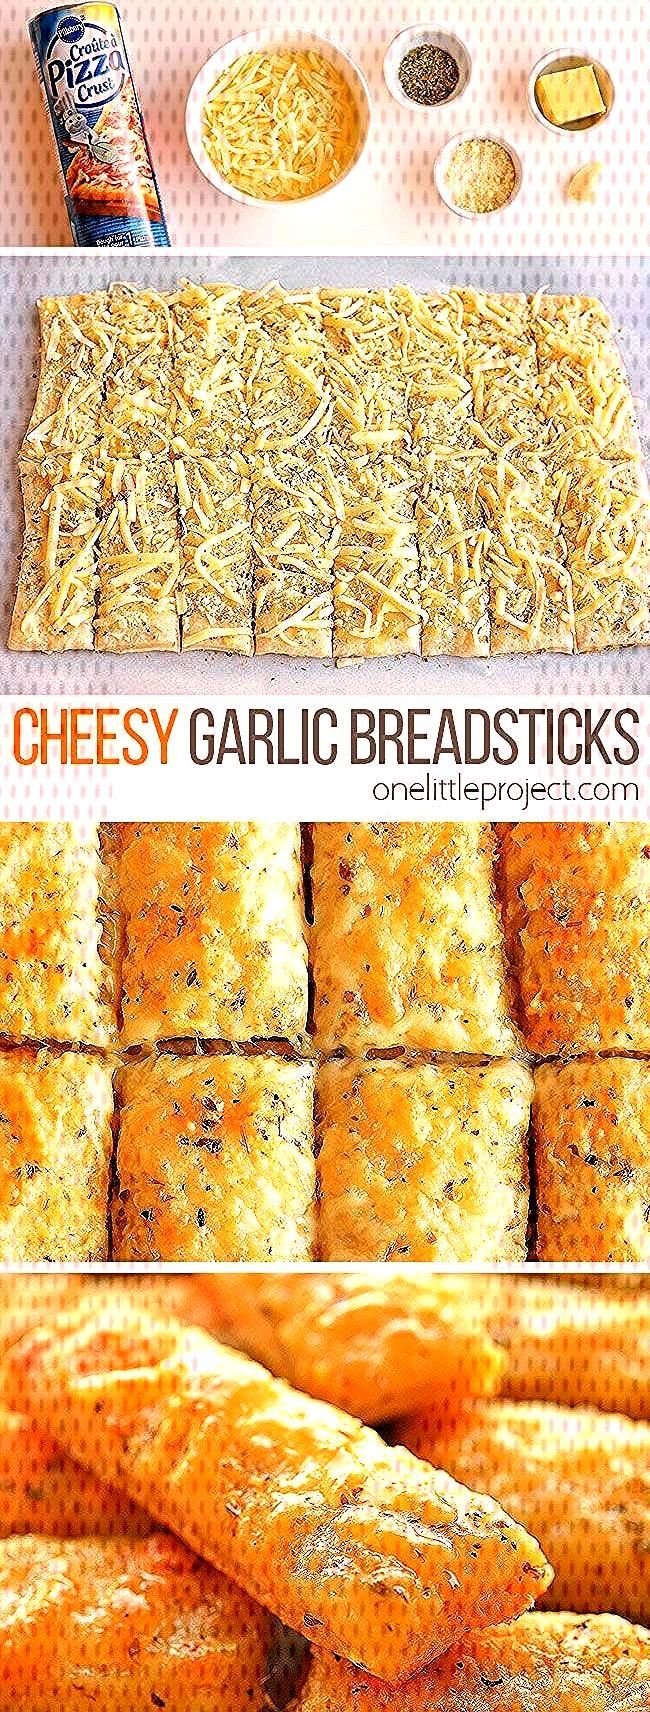 Easy Cheesy Garlic Breadsticks    These cheesy garlic breadsticks are so easy to make and they